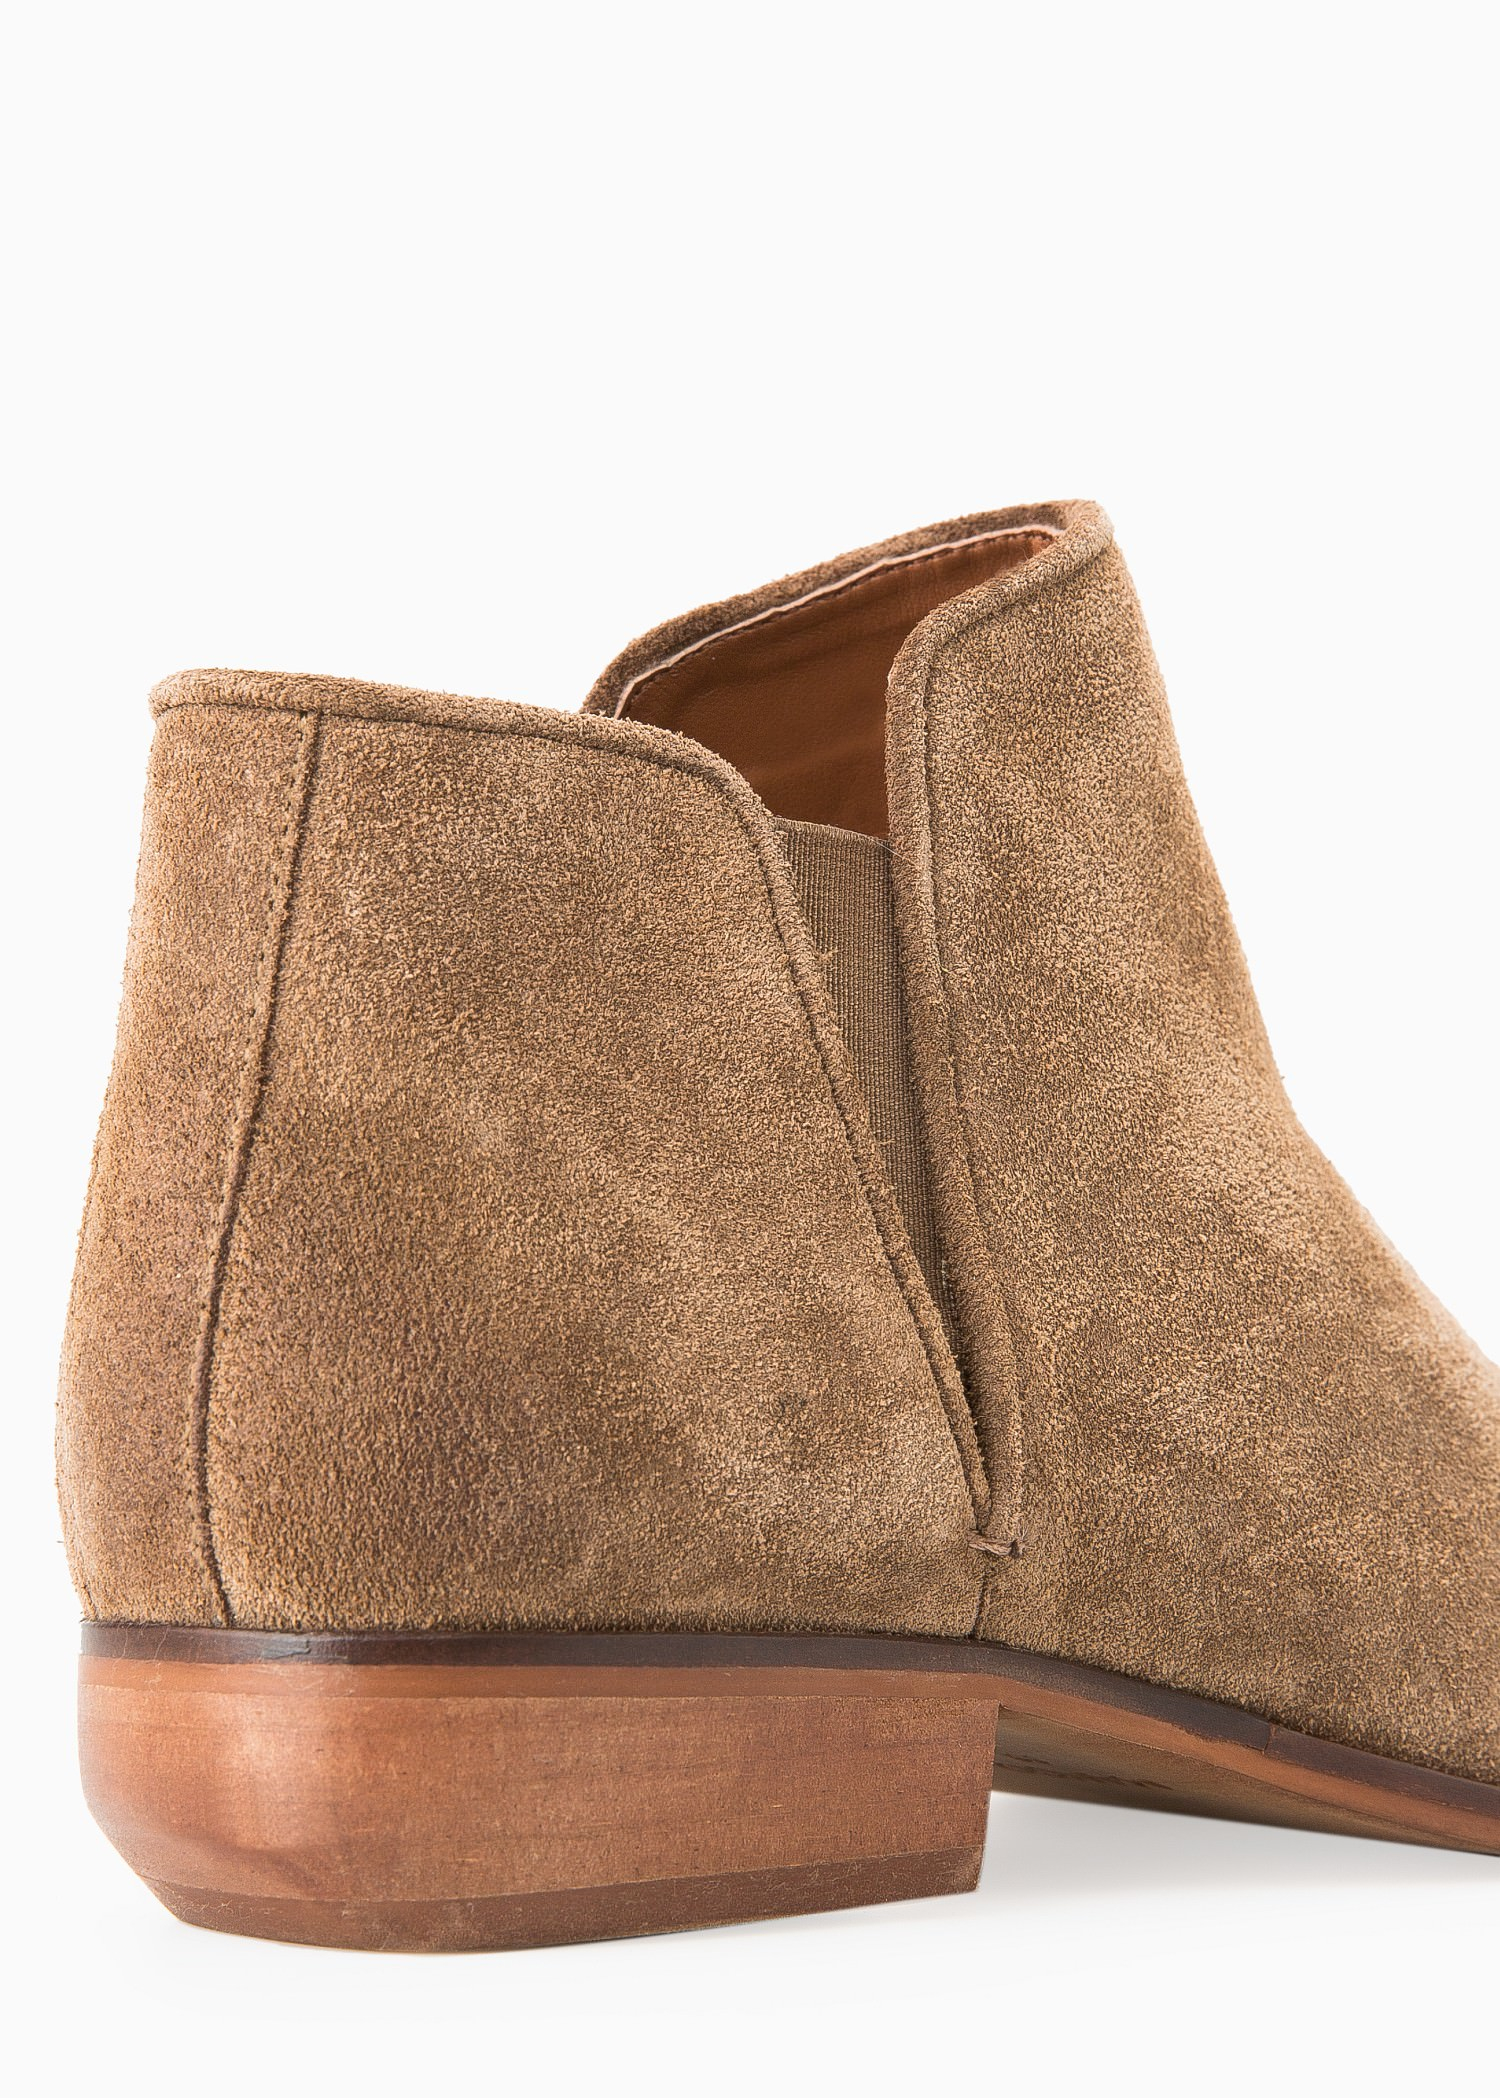 Mango Flat Suede Ankle Boots in Sand